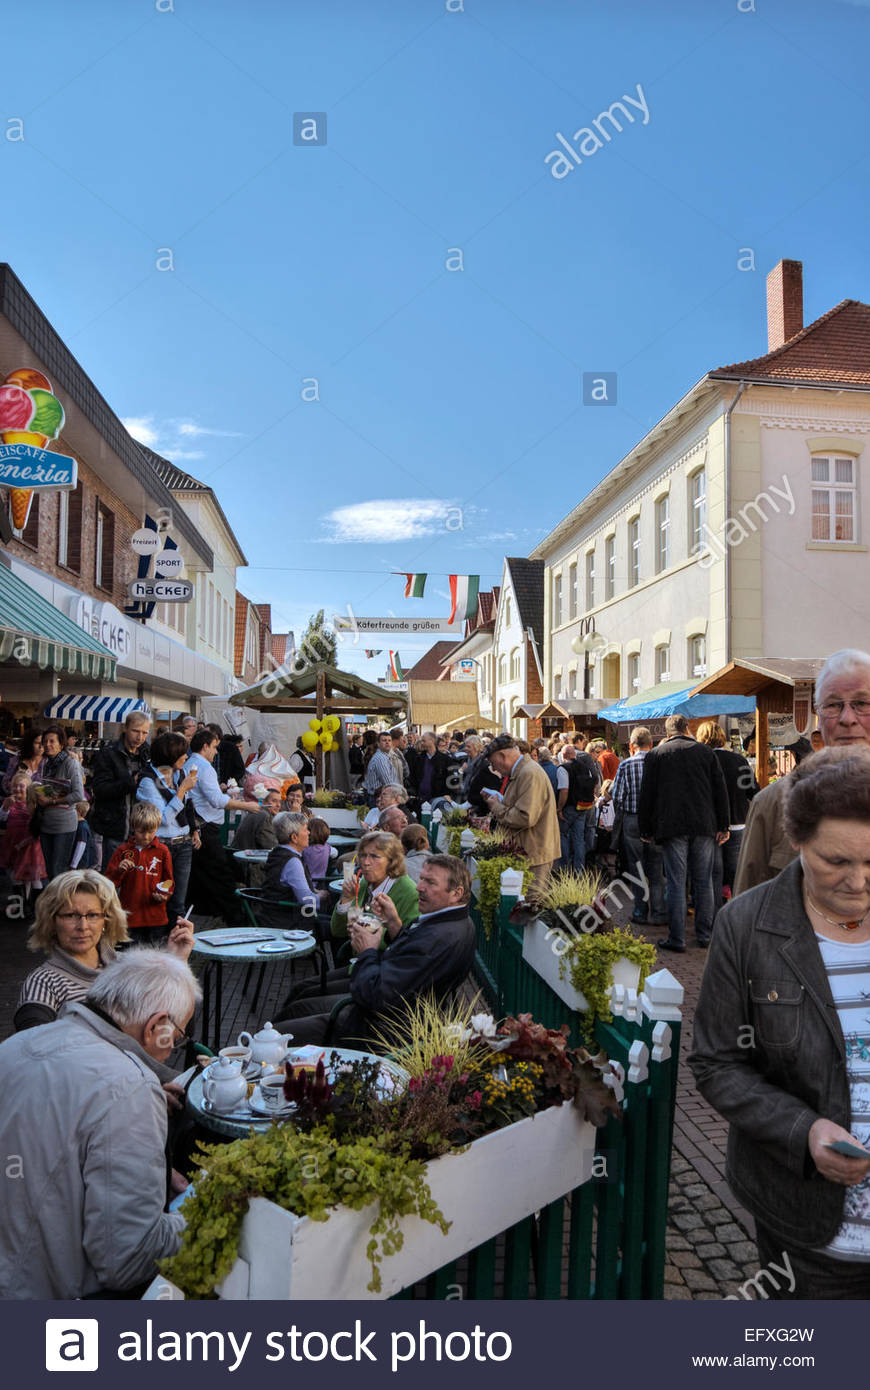 Outdoor refreshments are served on Grossestrasse in Fürstenau, Lower Saxony, during Hansetag festival. - Stock Image